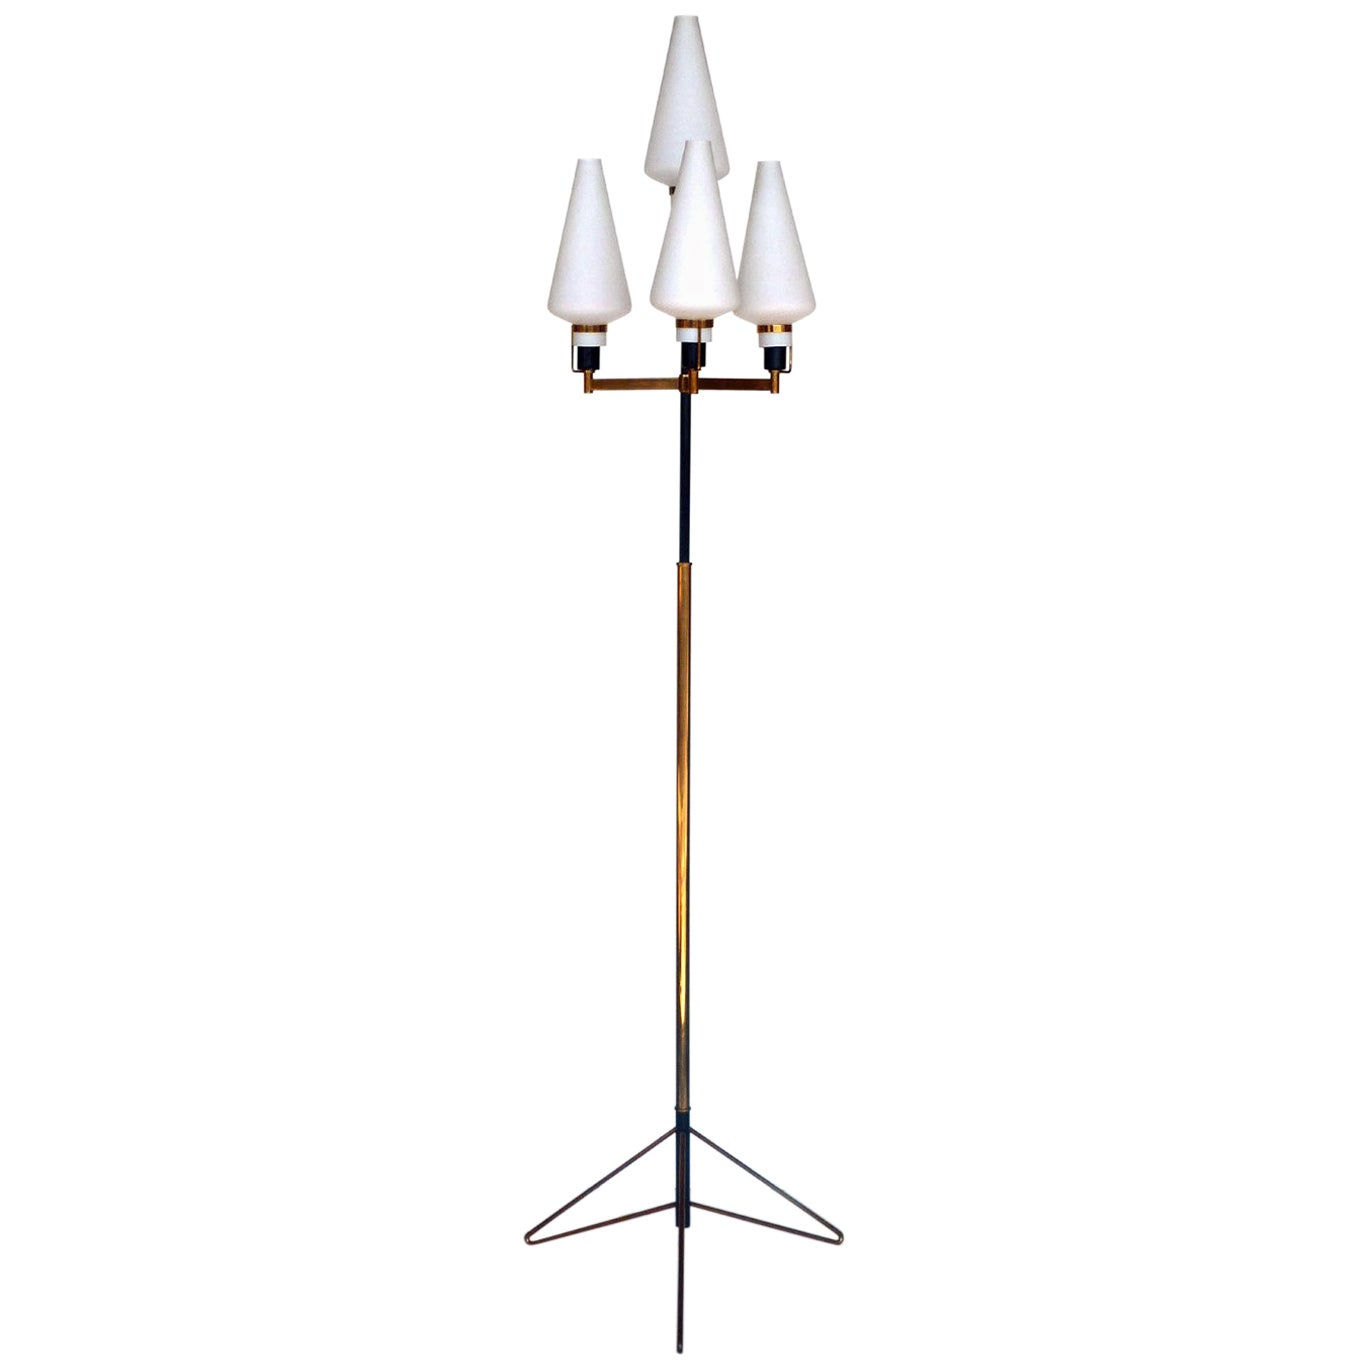 Stilnovo Floor Lamp Italian Design, Midcentury Italy 1950s, Glass and Brass